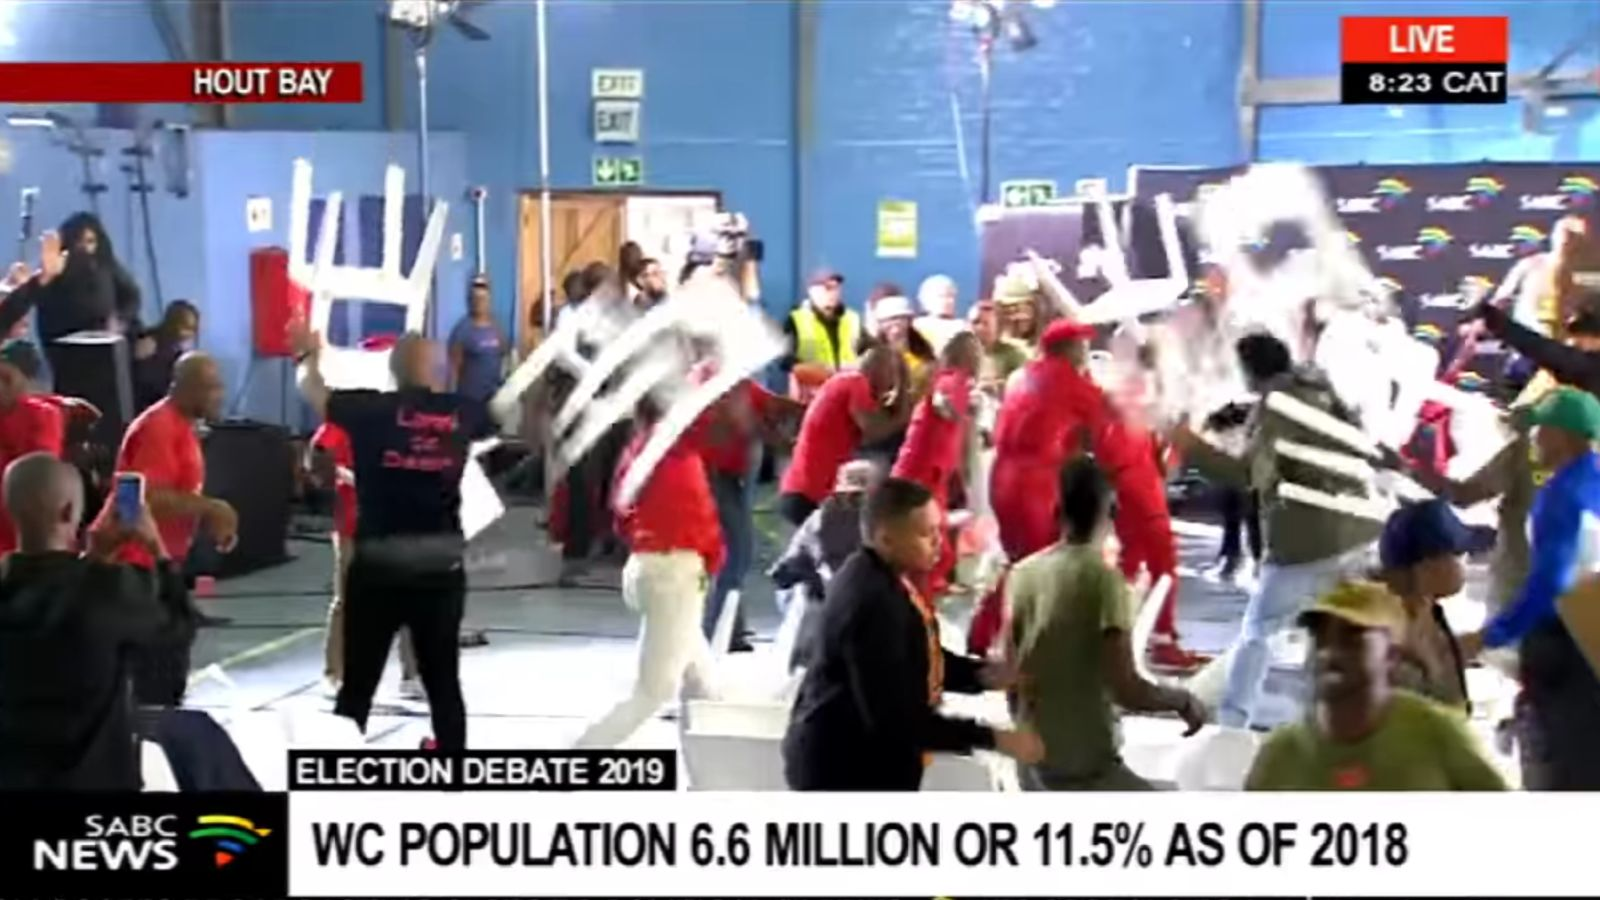 Eff land party throw chairs at one another during violent hout bay election debate